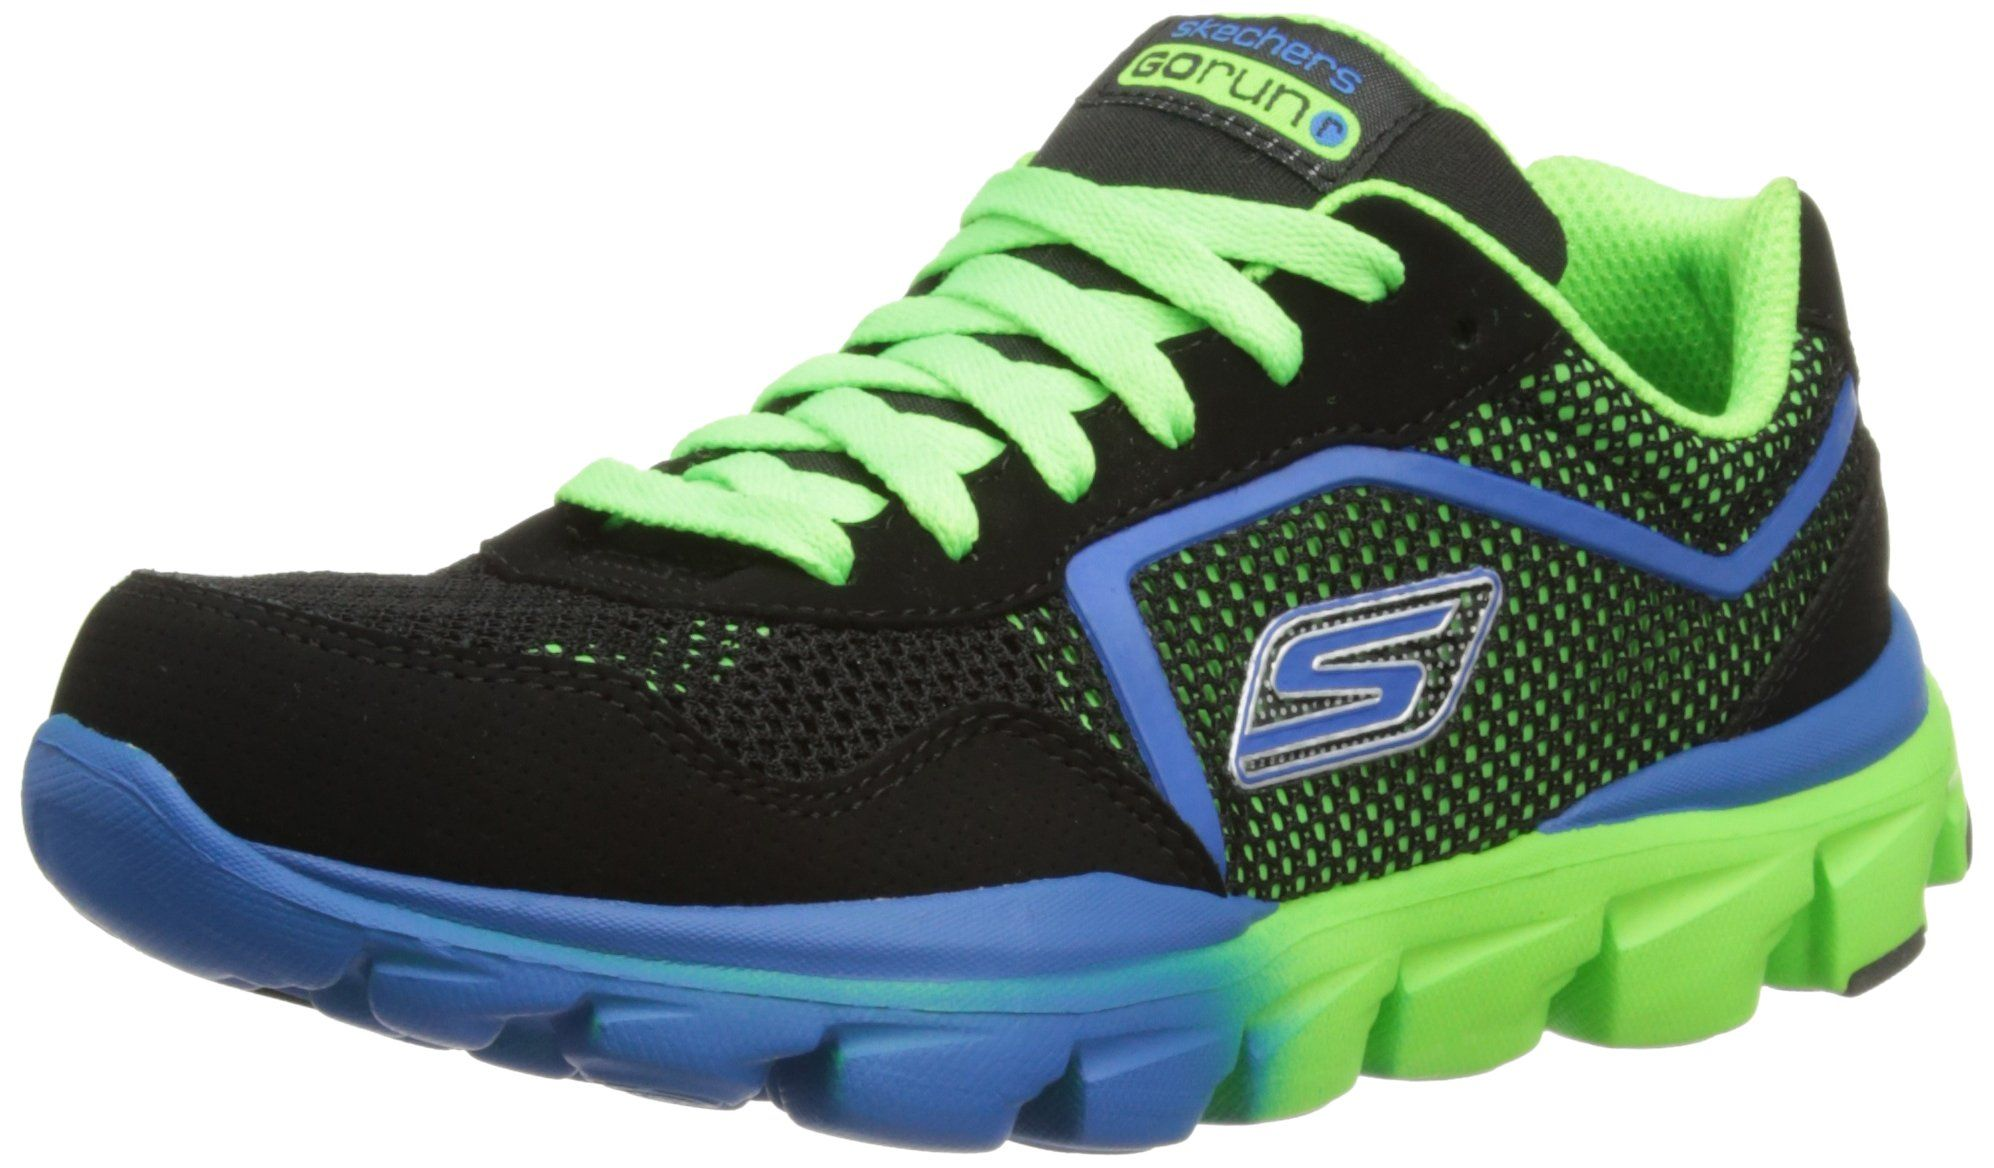 skechers kids tennis shoes